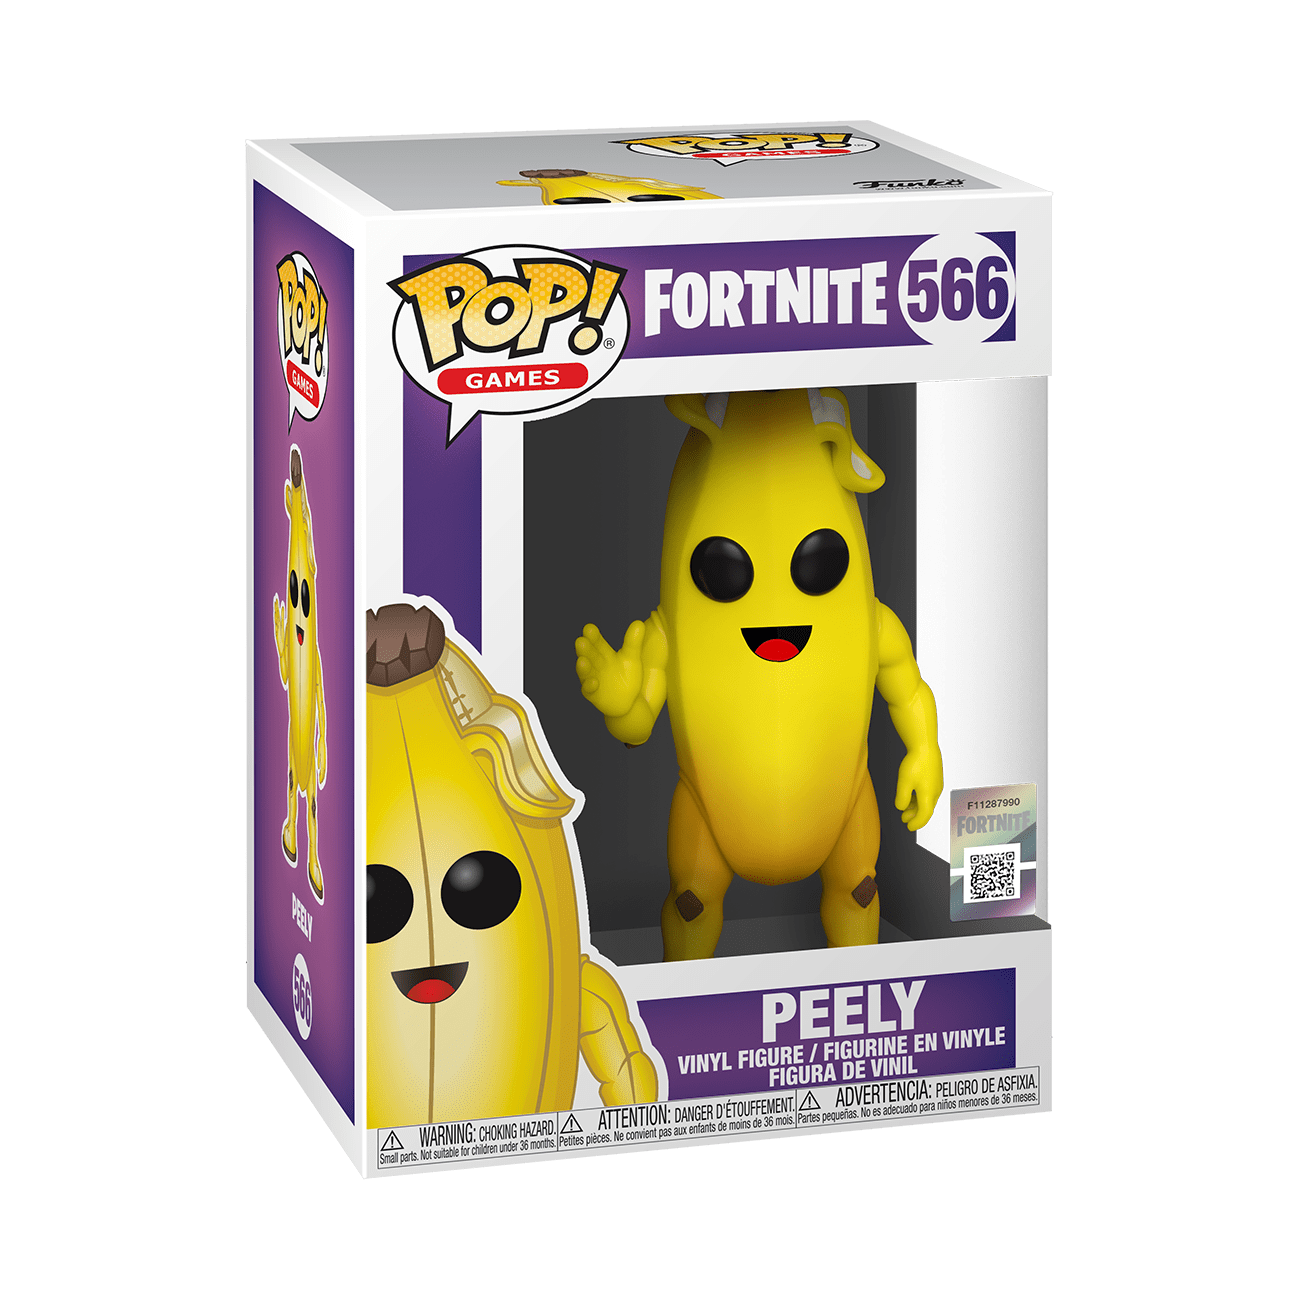 Pop! Fortnite: Peely